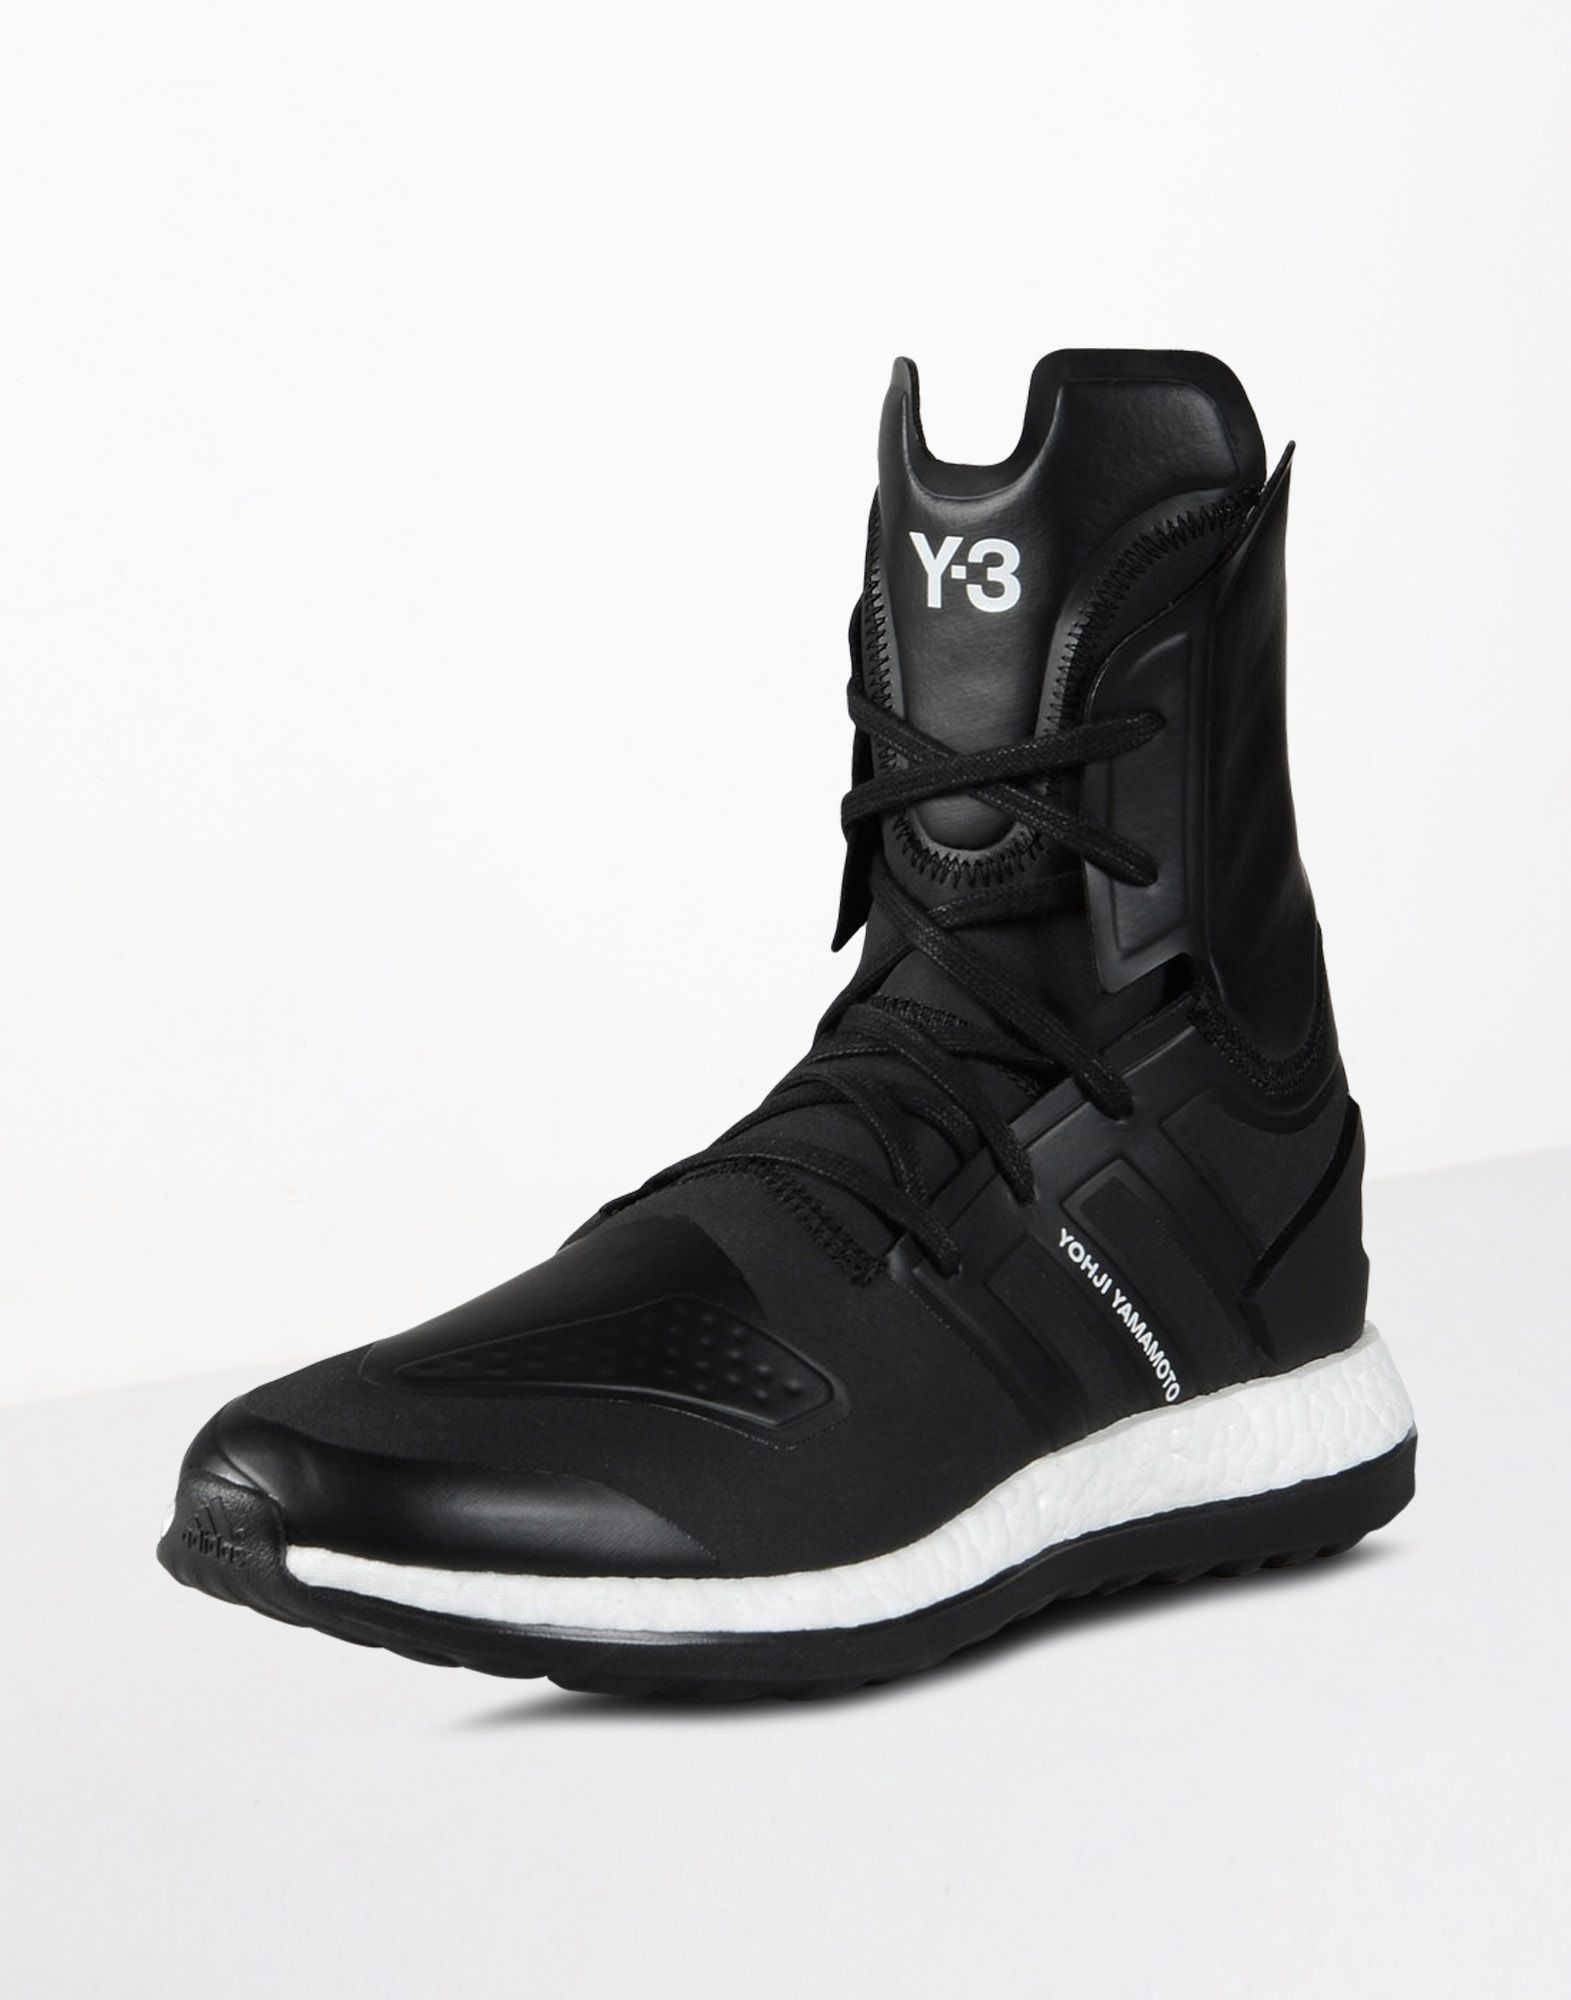 7ae25247f Y-3 PUREBOOST ZG HIGH SHOES man Y-3 adidas